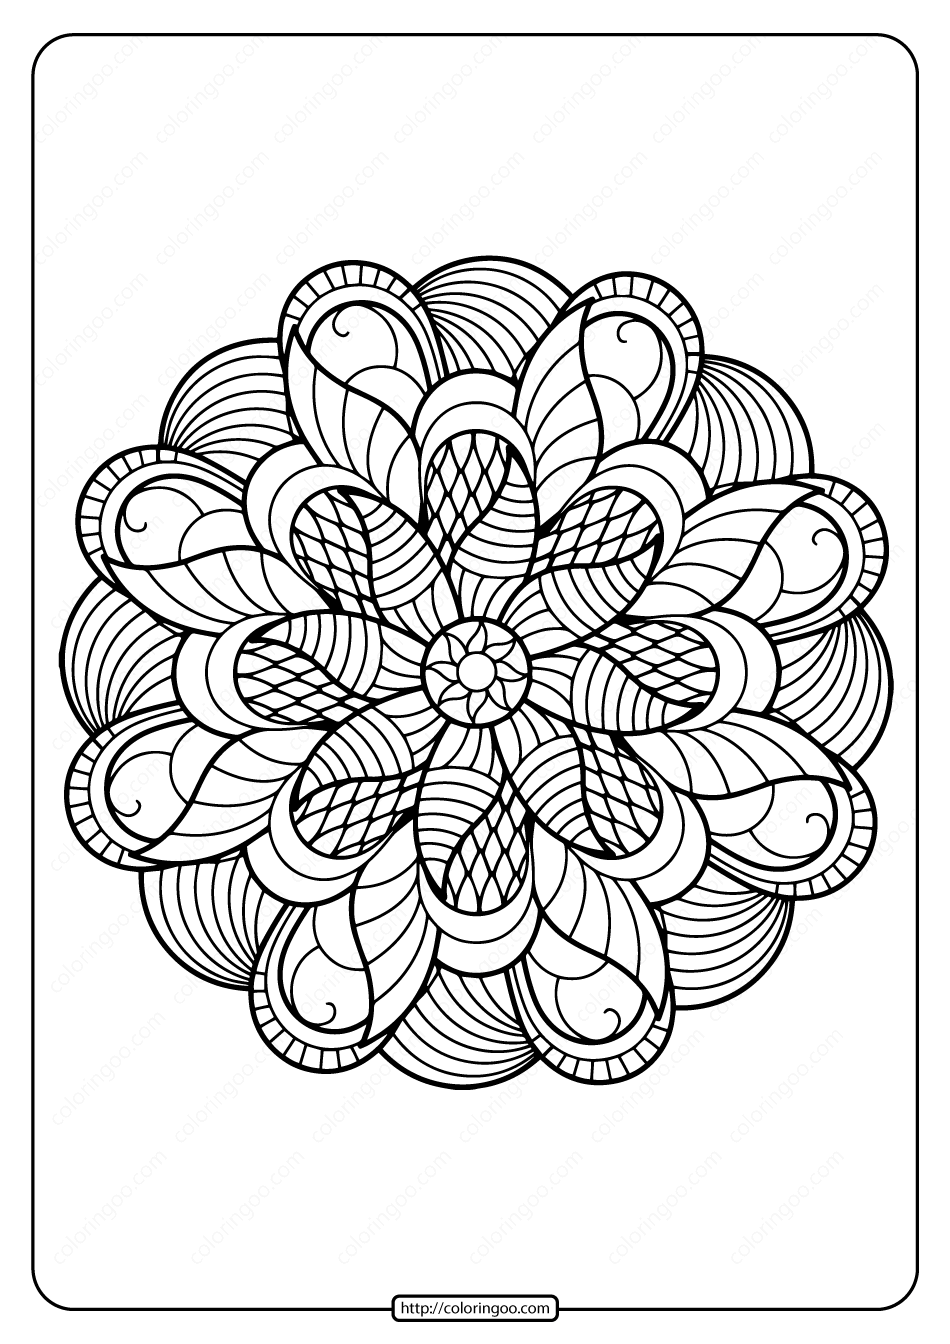 Printable PDF Coloring Book Pages for Adults 012